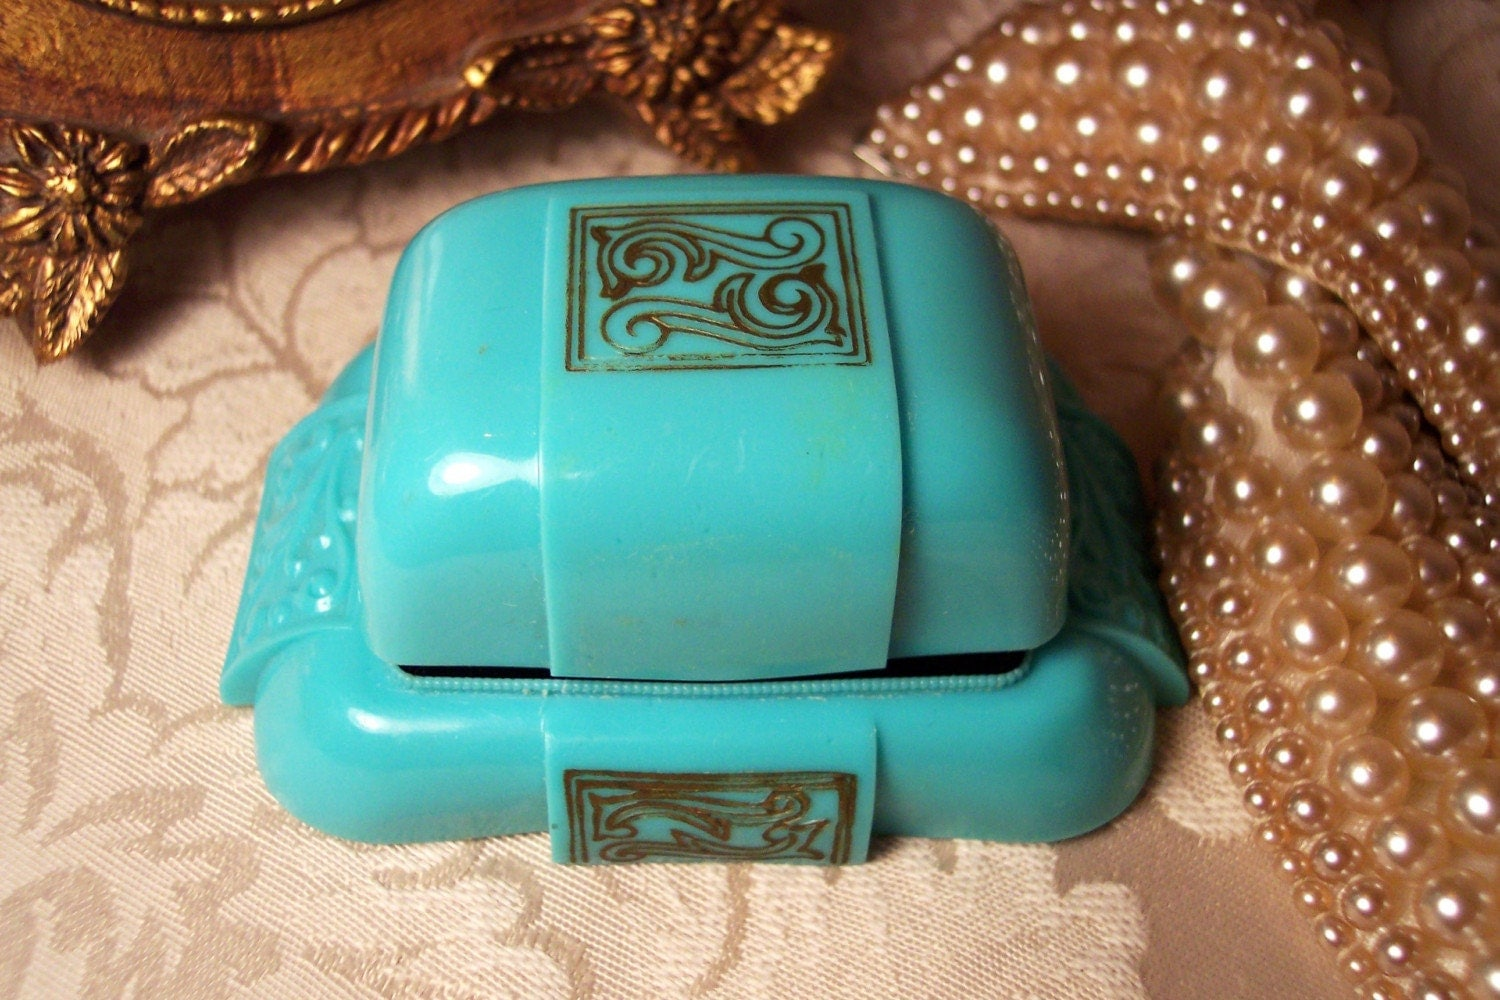 VINTAGE ART DECO TIFFANY BLUE BAKELITE RING BOX